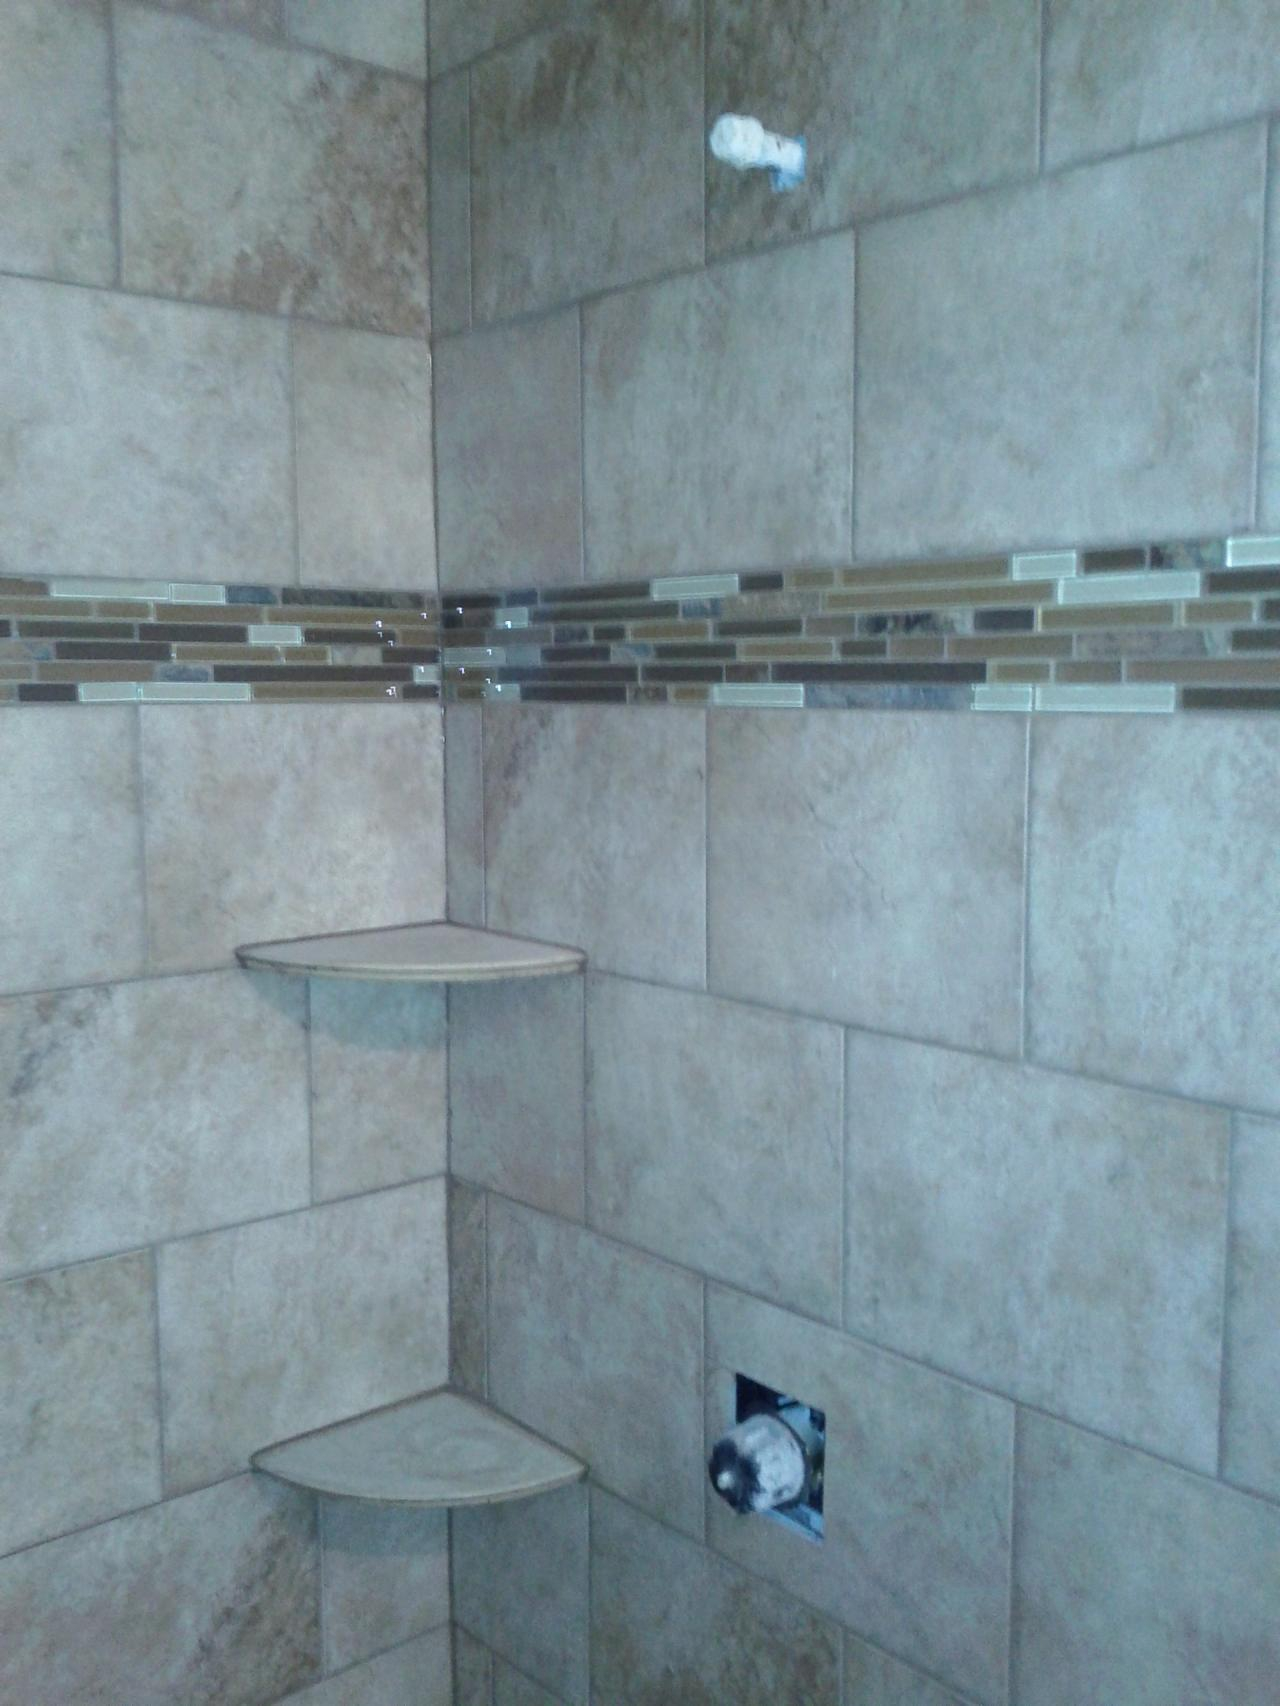 4 handful pictures about laying ceramic tile in bathroom ceramic bathroom tile bathroom shower tile show1s dailygadgetfo Gallery